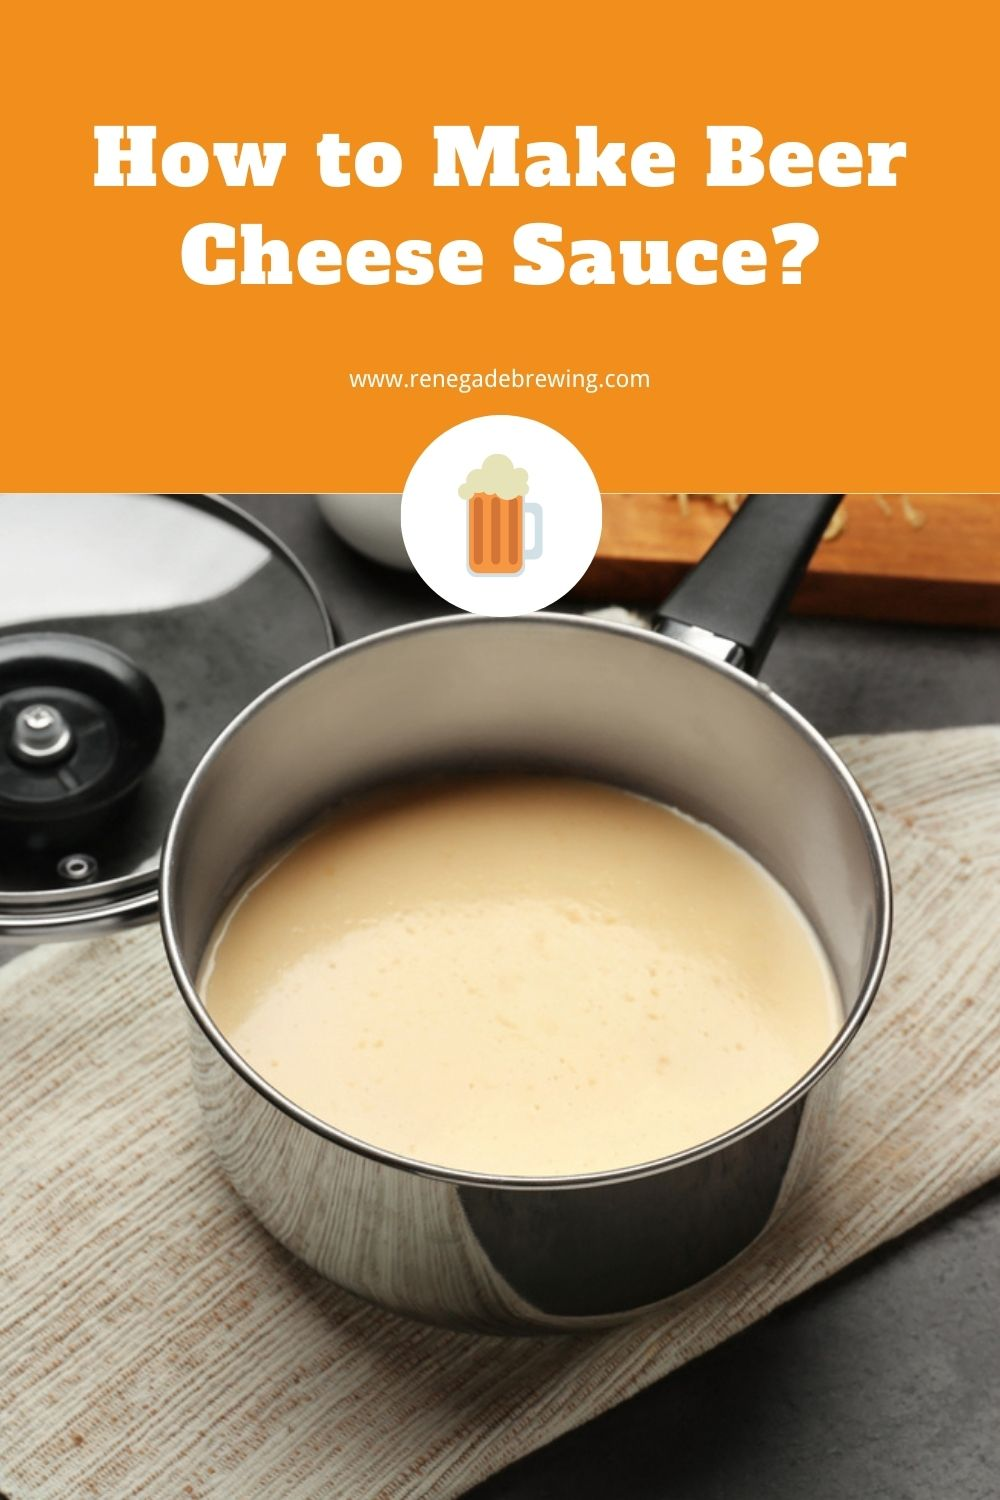 How to Make Beer Cheese Sauce 1